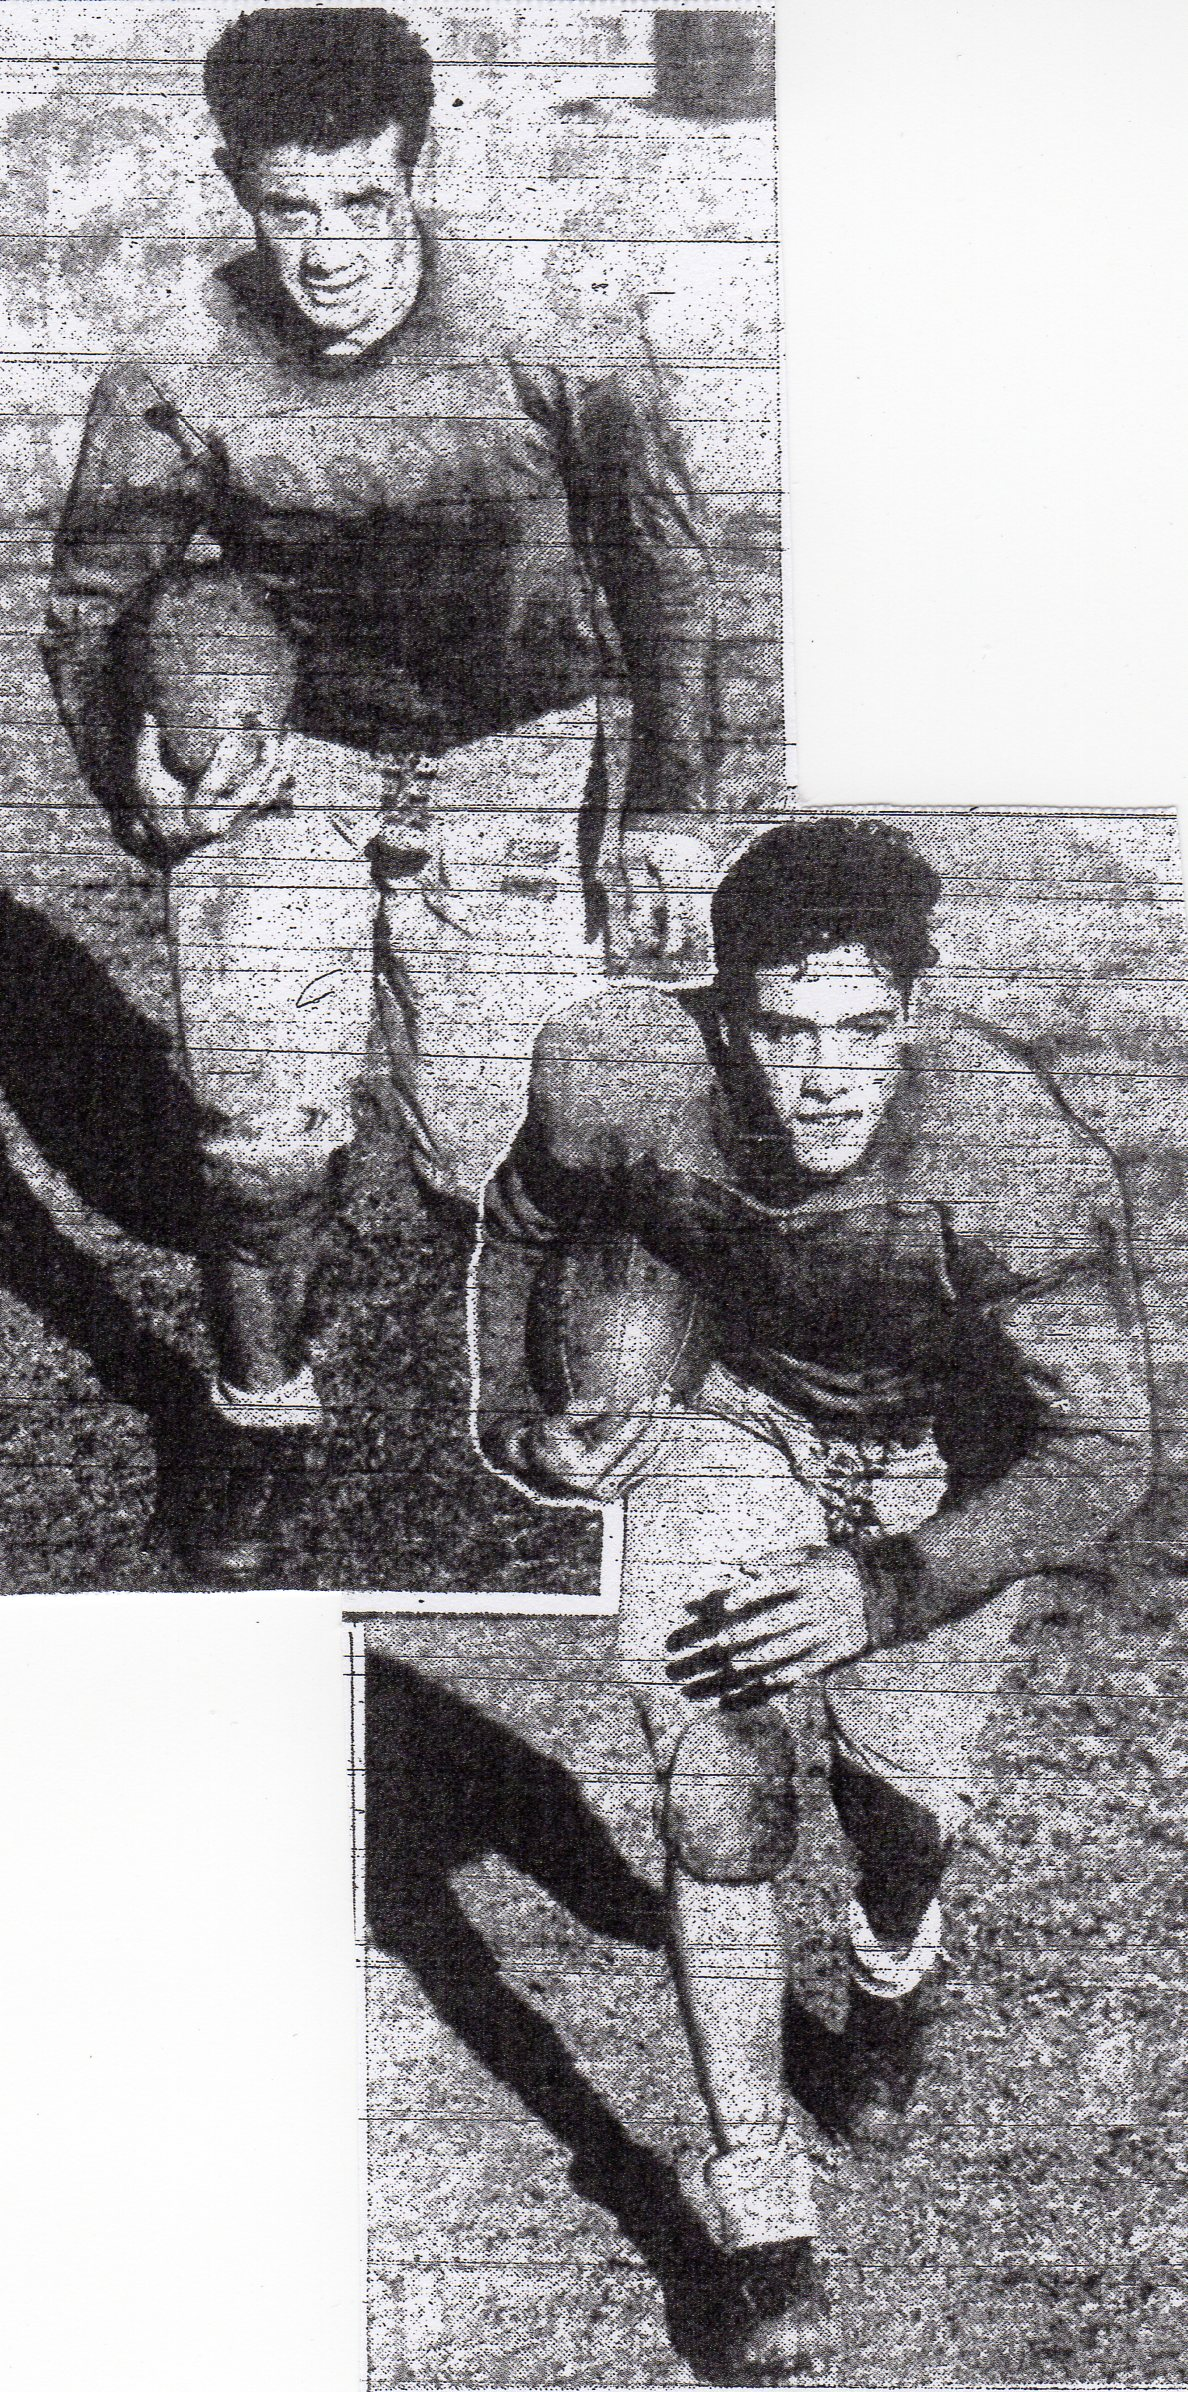 Lyle finnerty (top) was the younger brother of Leon (bottom).